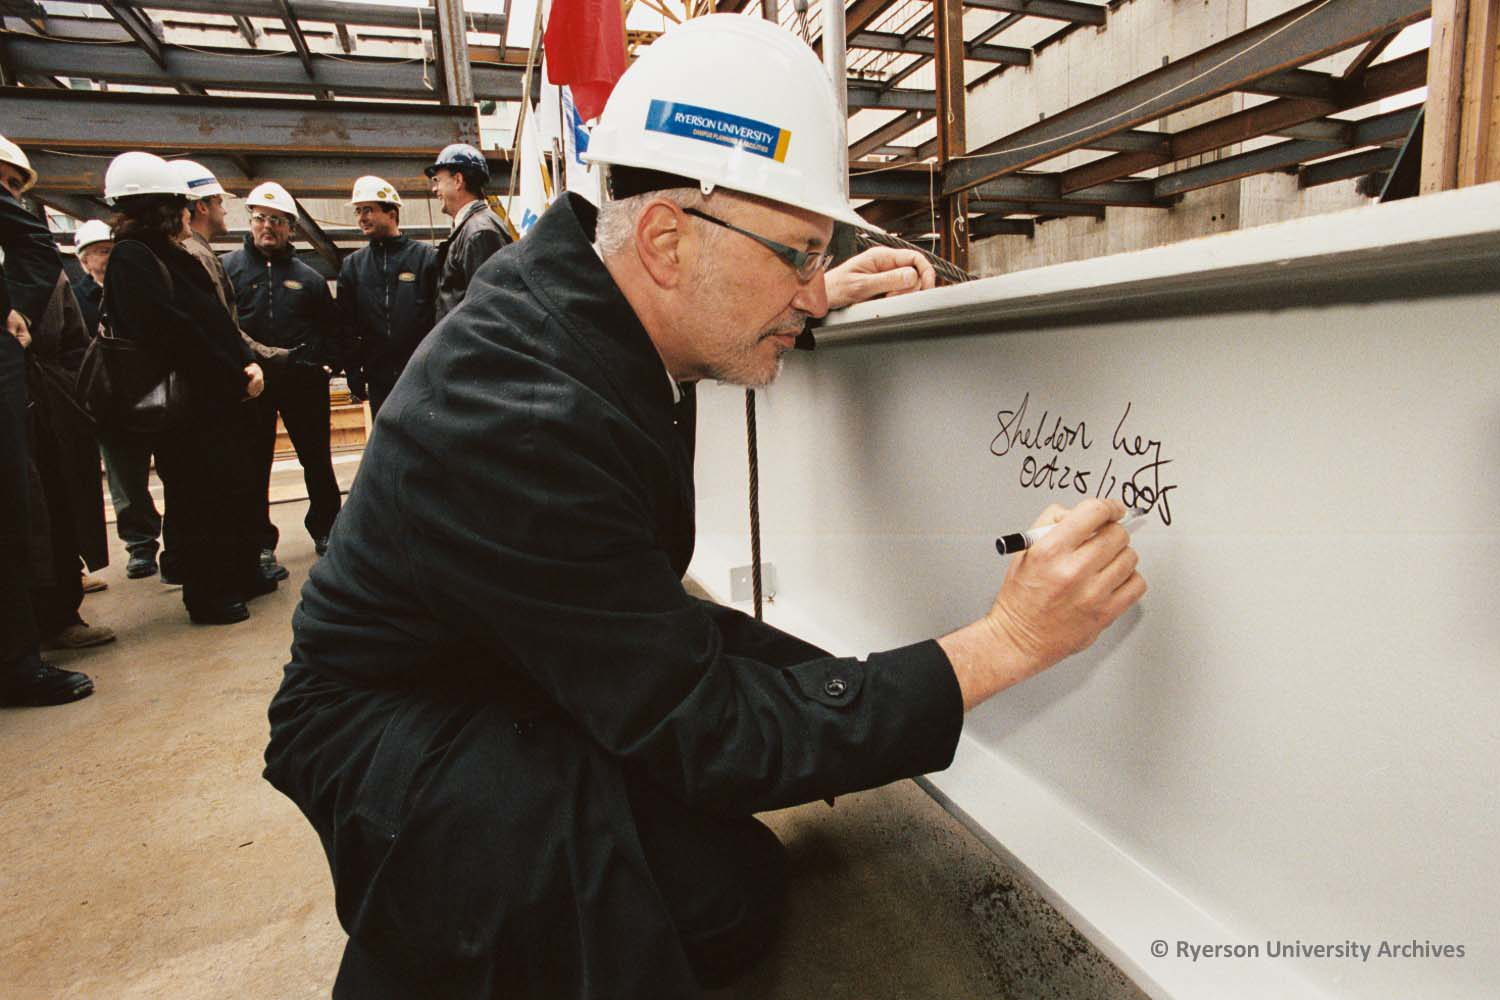 Ryerson president Sheldon Levy signs his name and dates a structural steel beam on Oct. 25, 2005 during construction at the Ted Rogers School of Management west of Yonge Street. (Courtesy Ryerson Archives)